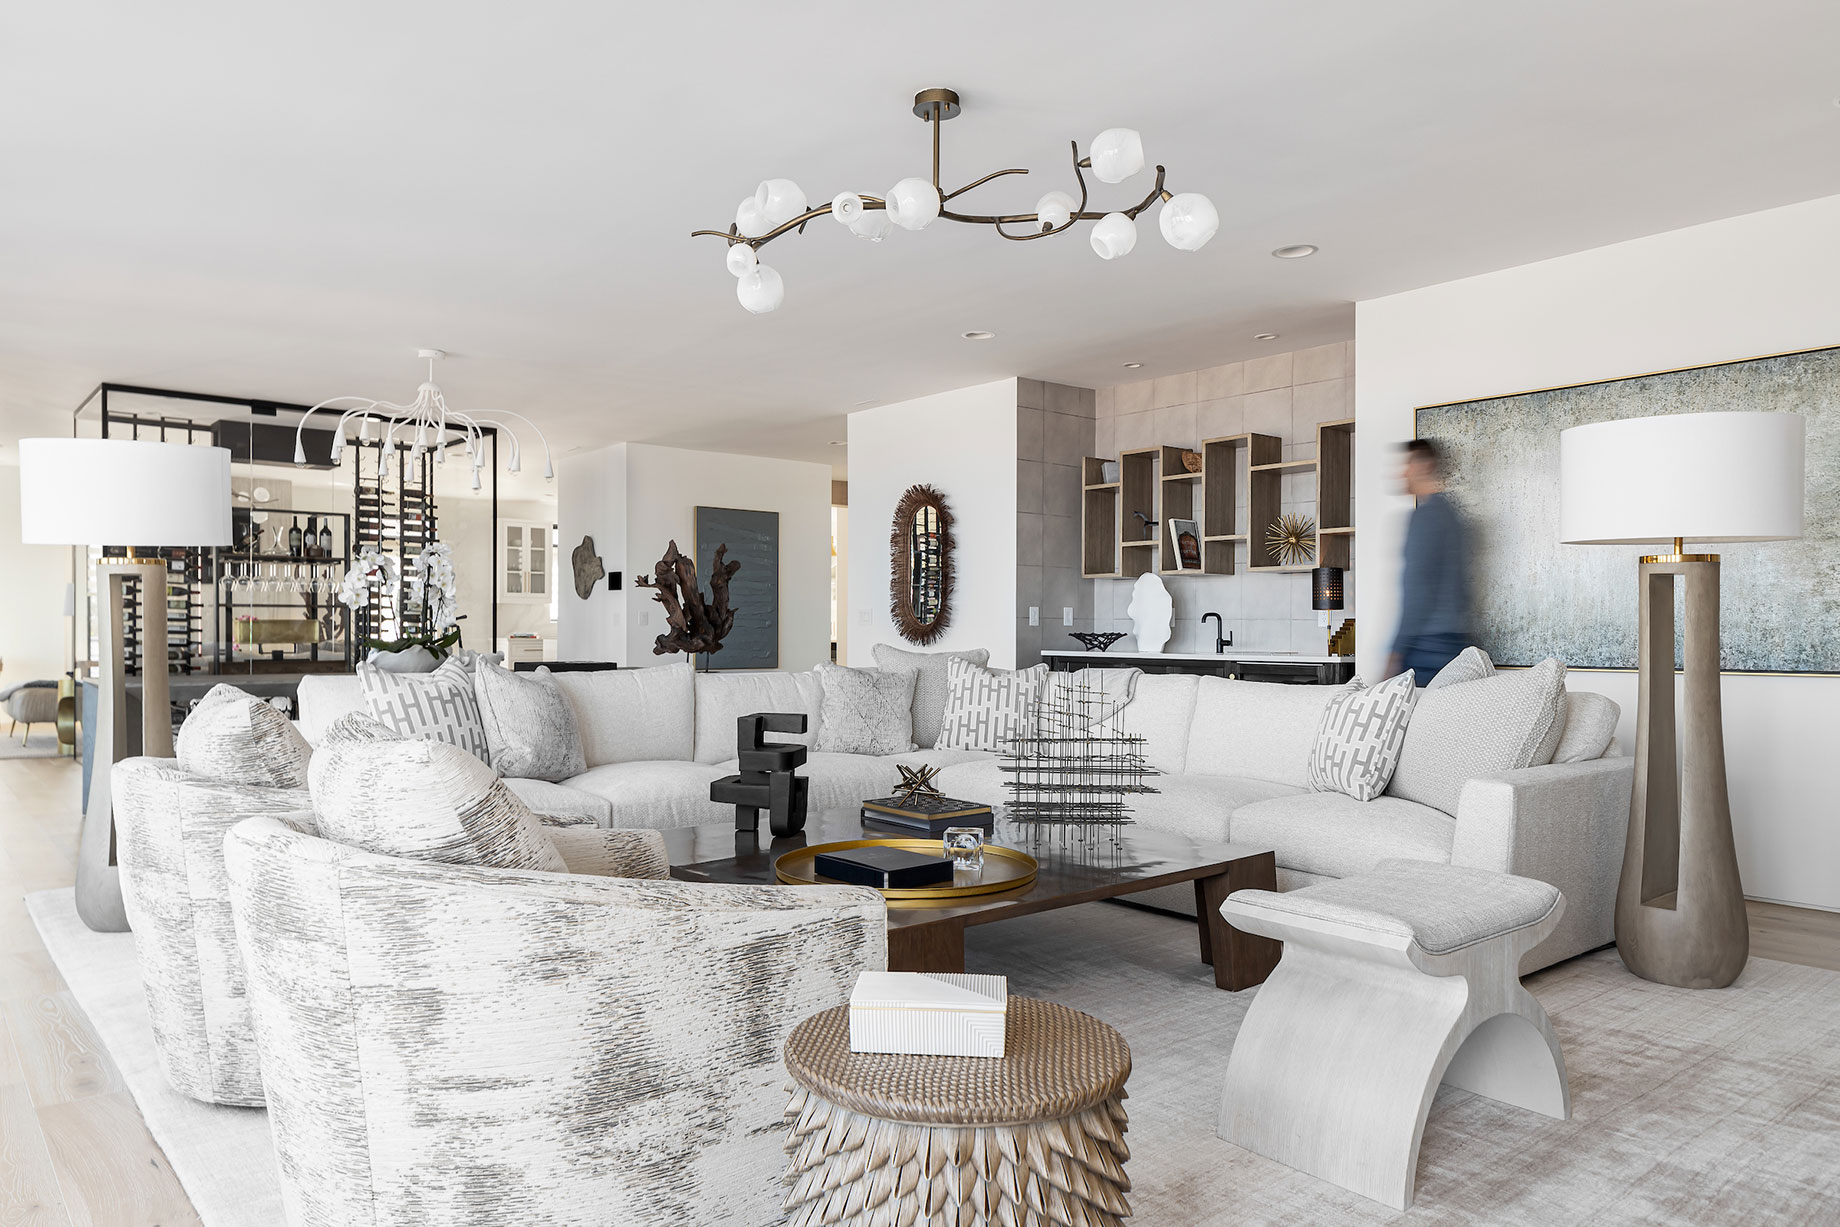 Living room in Virginia Beach home designed by Kenneth Byrd shot by Quentin Penn Hollar for Virginia Living Magazine